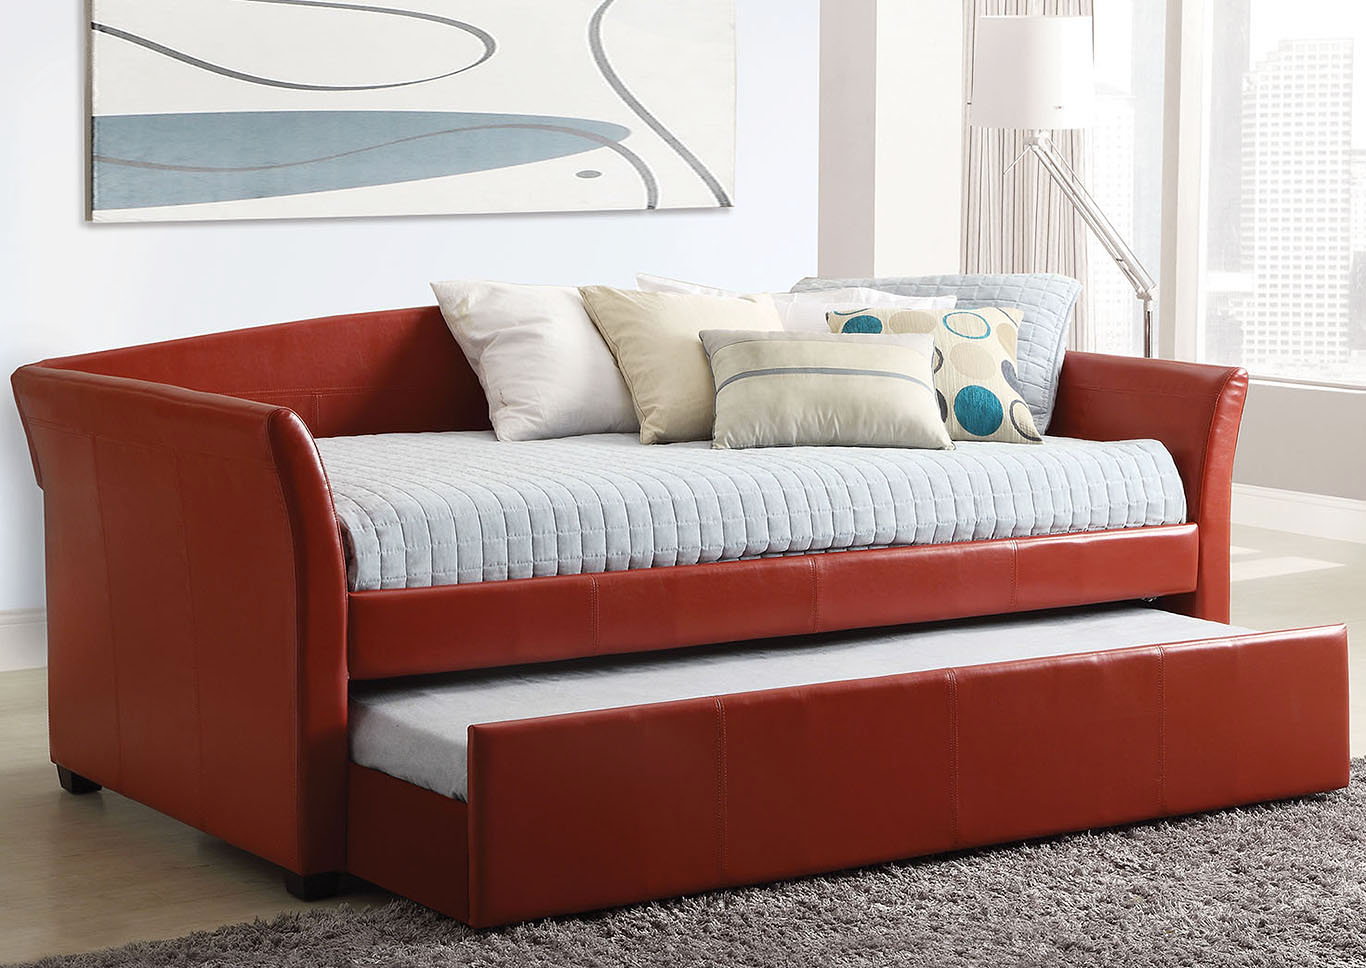 Delmar Red Daybed w/Twin Trundle & Casters,Furniture of America